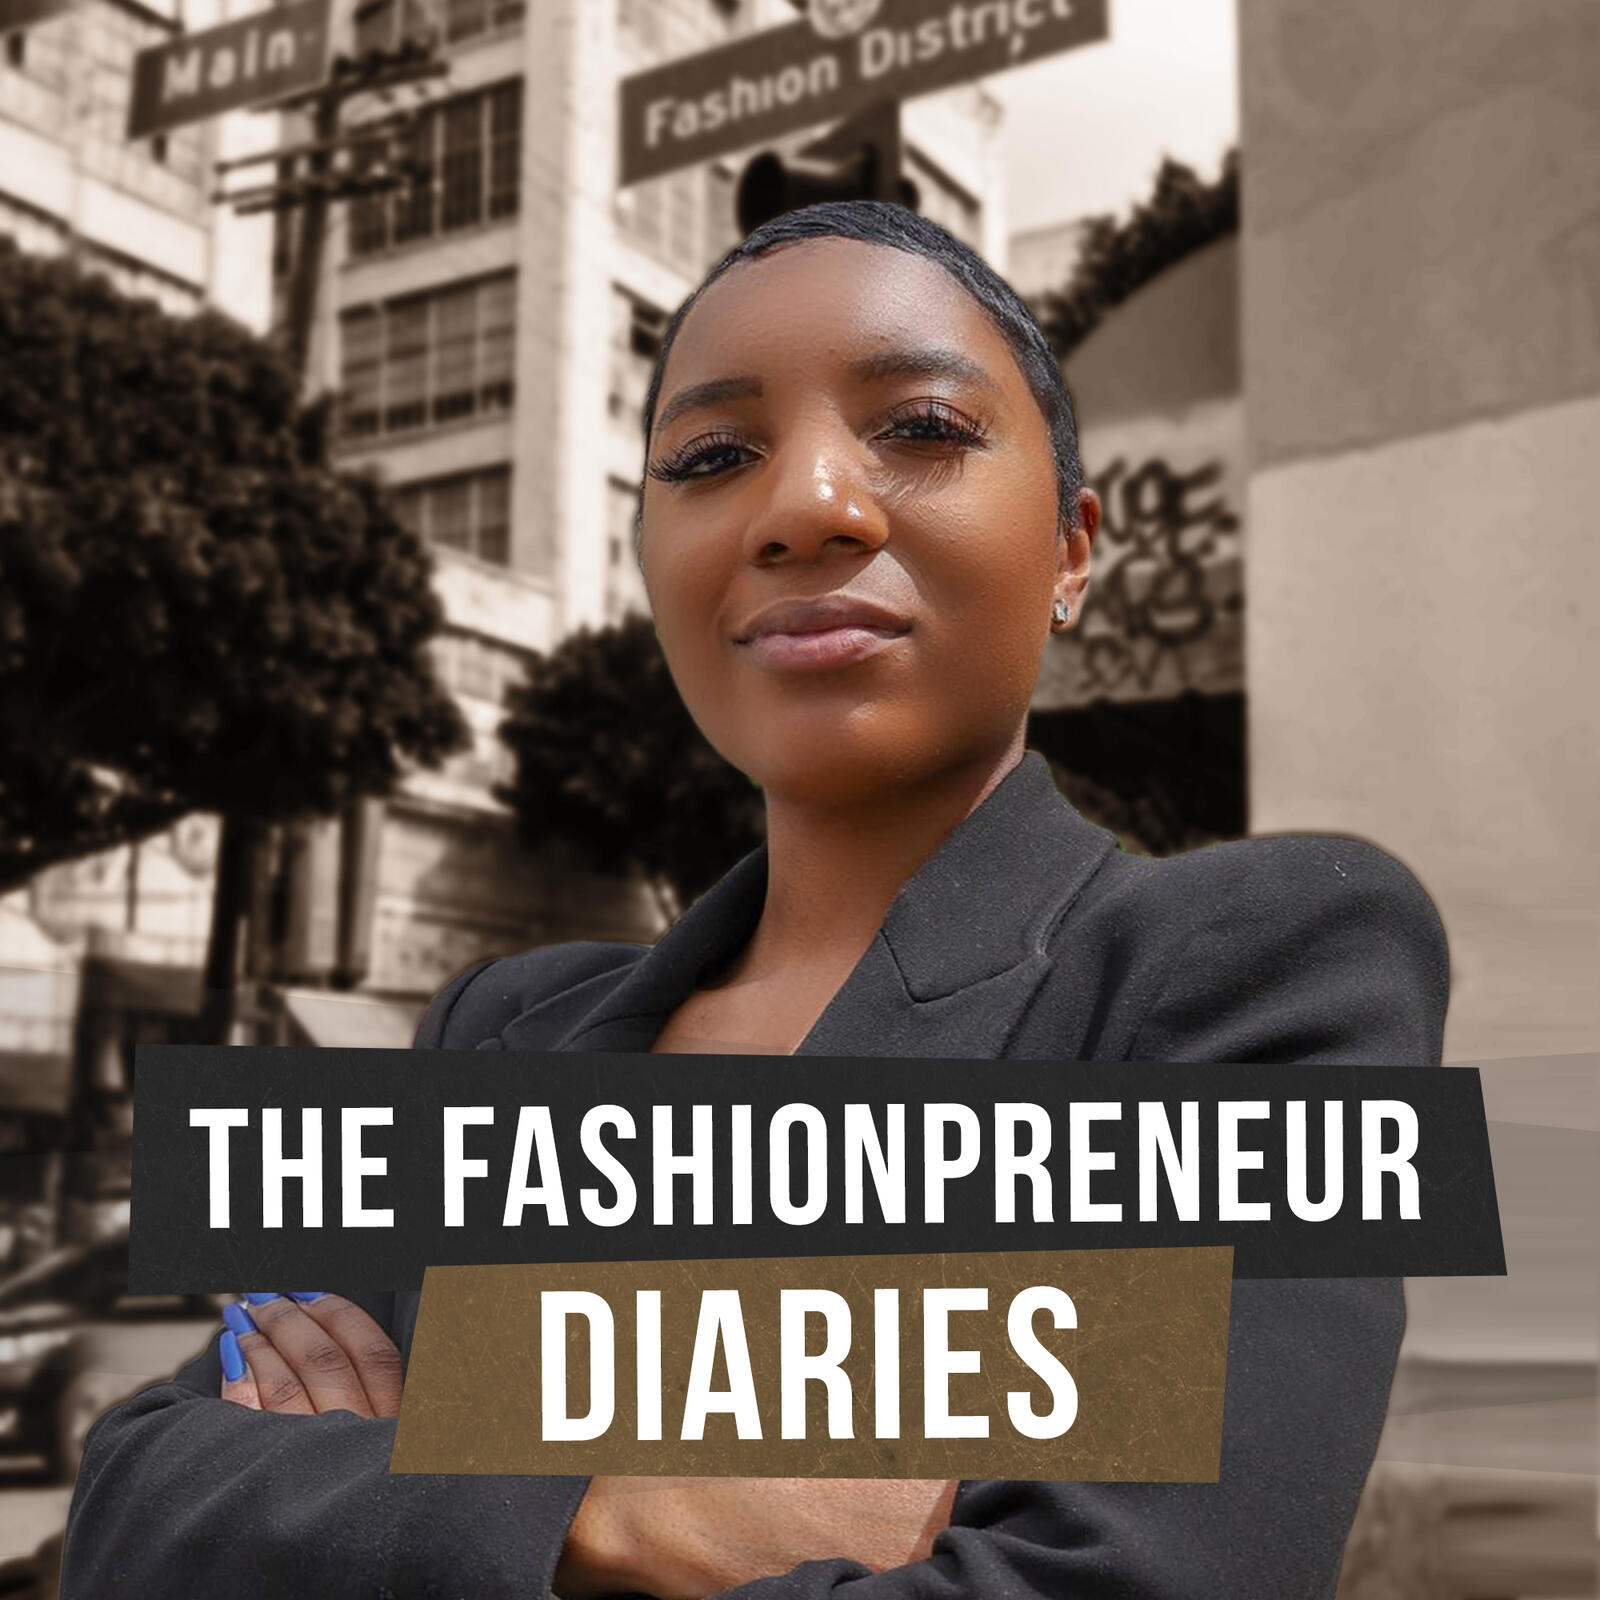 Introducing: The Fashionpreneur Diaries